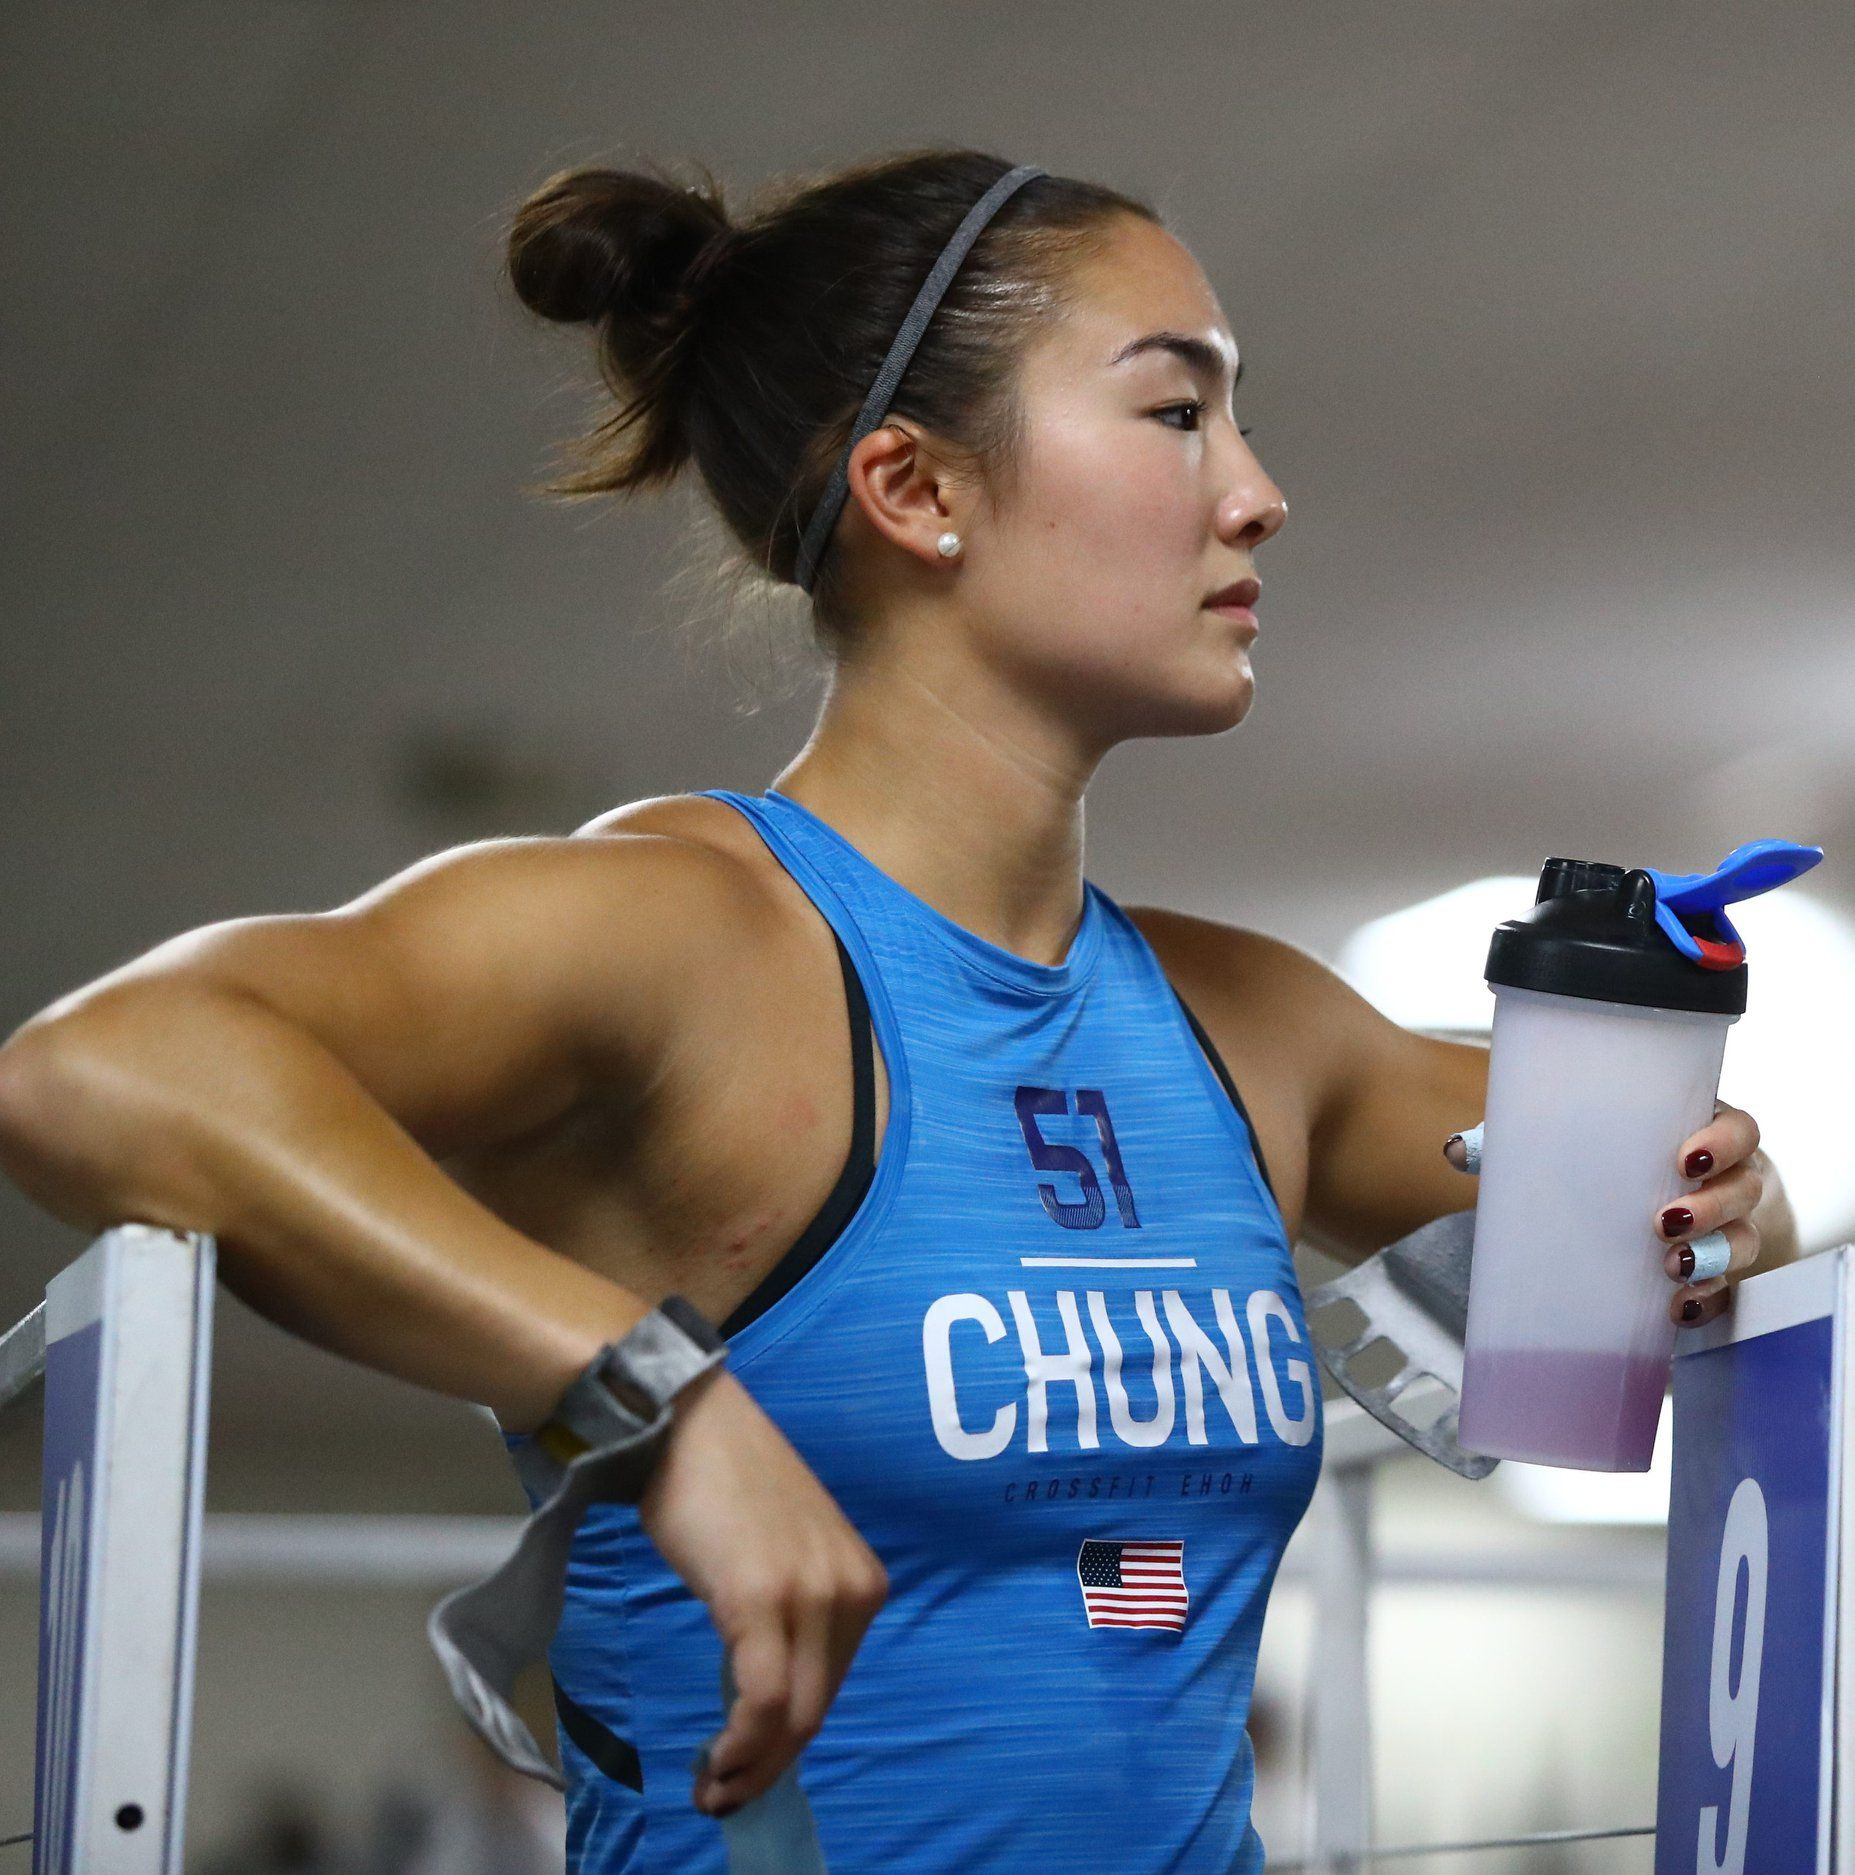 Steph Chung 2018 CrossFit Games, 35th Place Athletic